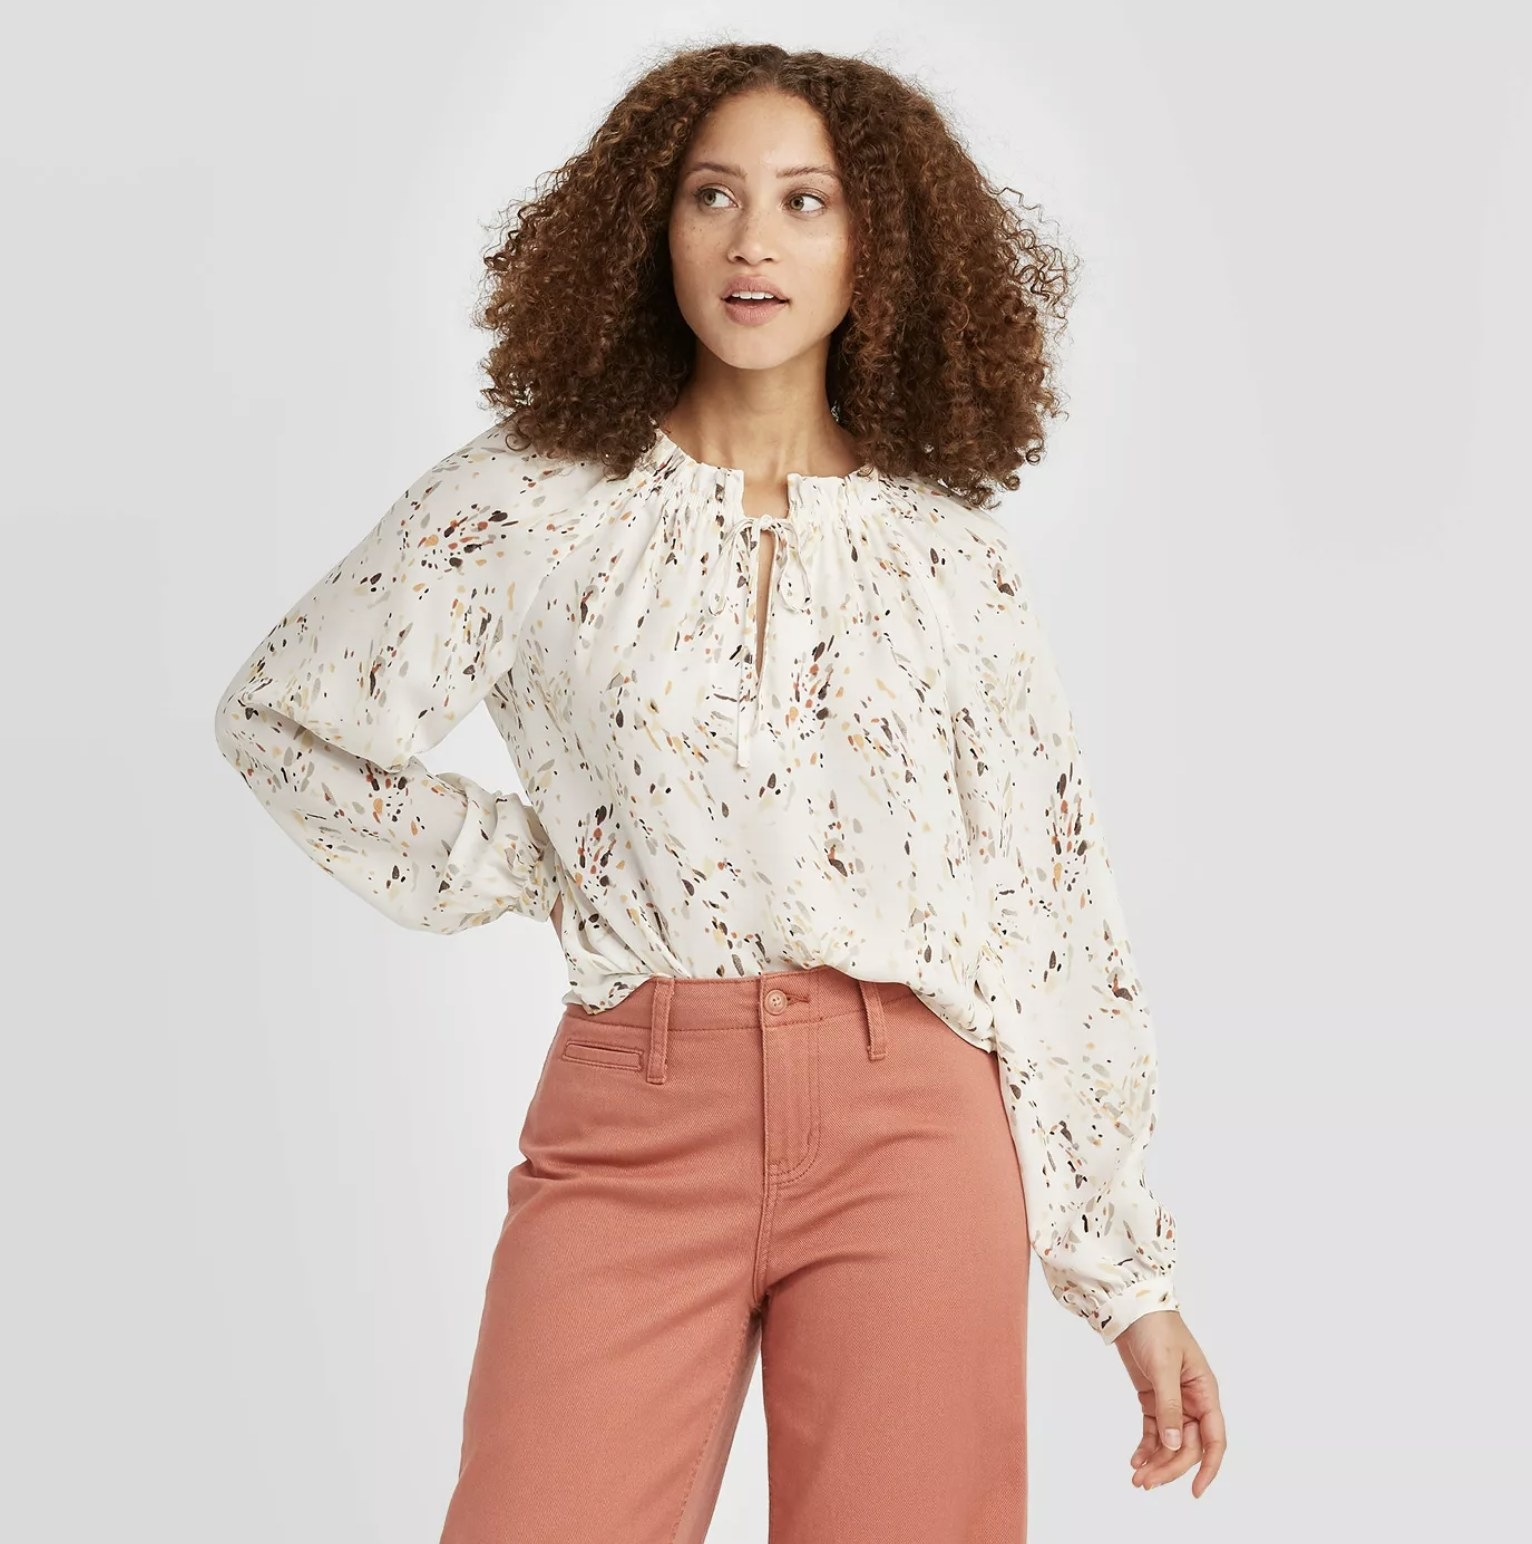 model wearing the sleeved white and floral blouse